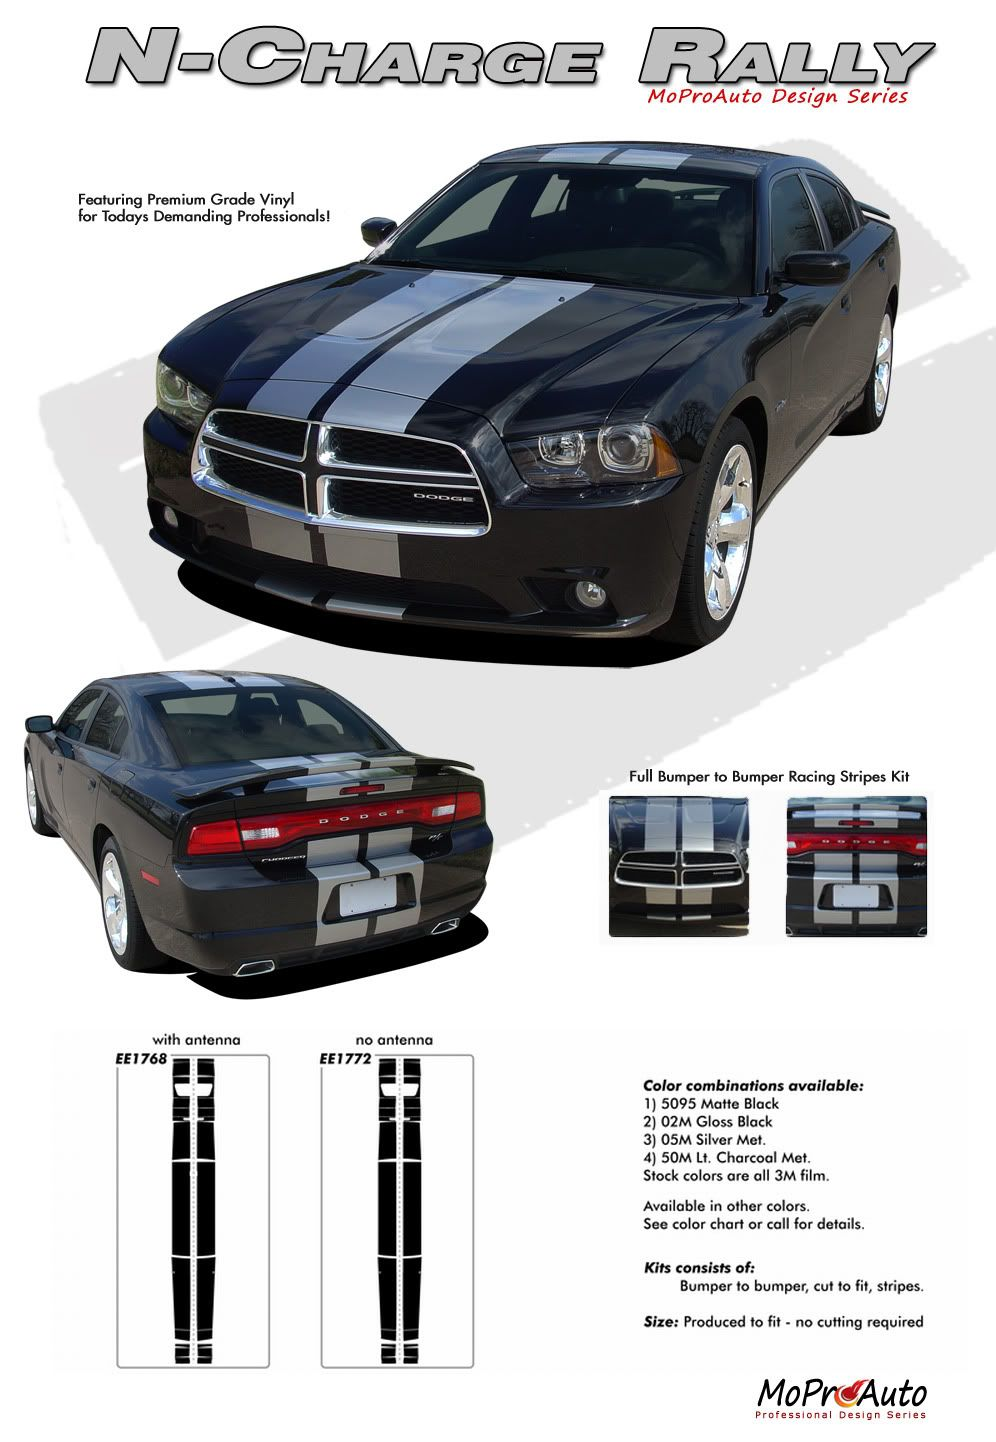 N charge rally vinyl graphics racing stripes kit for dodge charger complete racing stripes kit for the dodge charger 2011 2014 models pre cut de